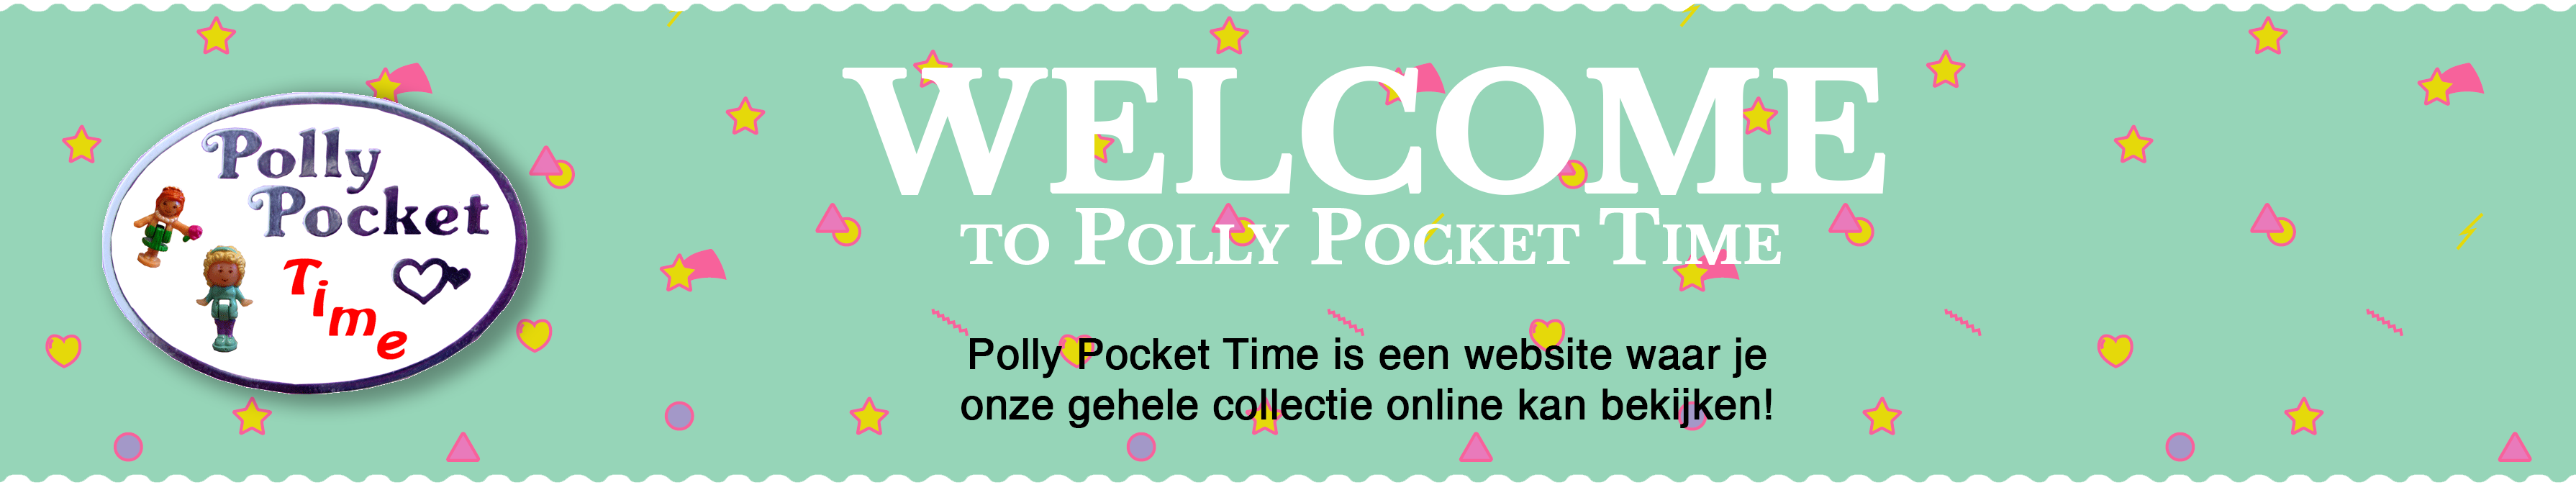 Polly Pocket Time